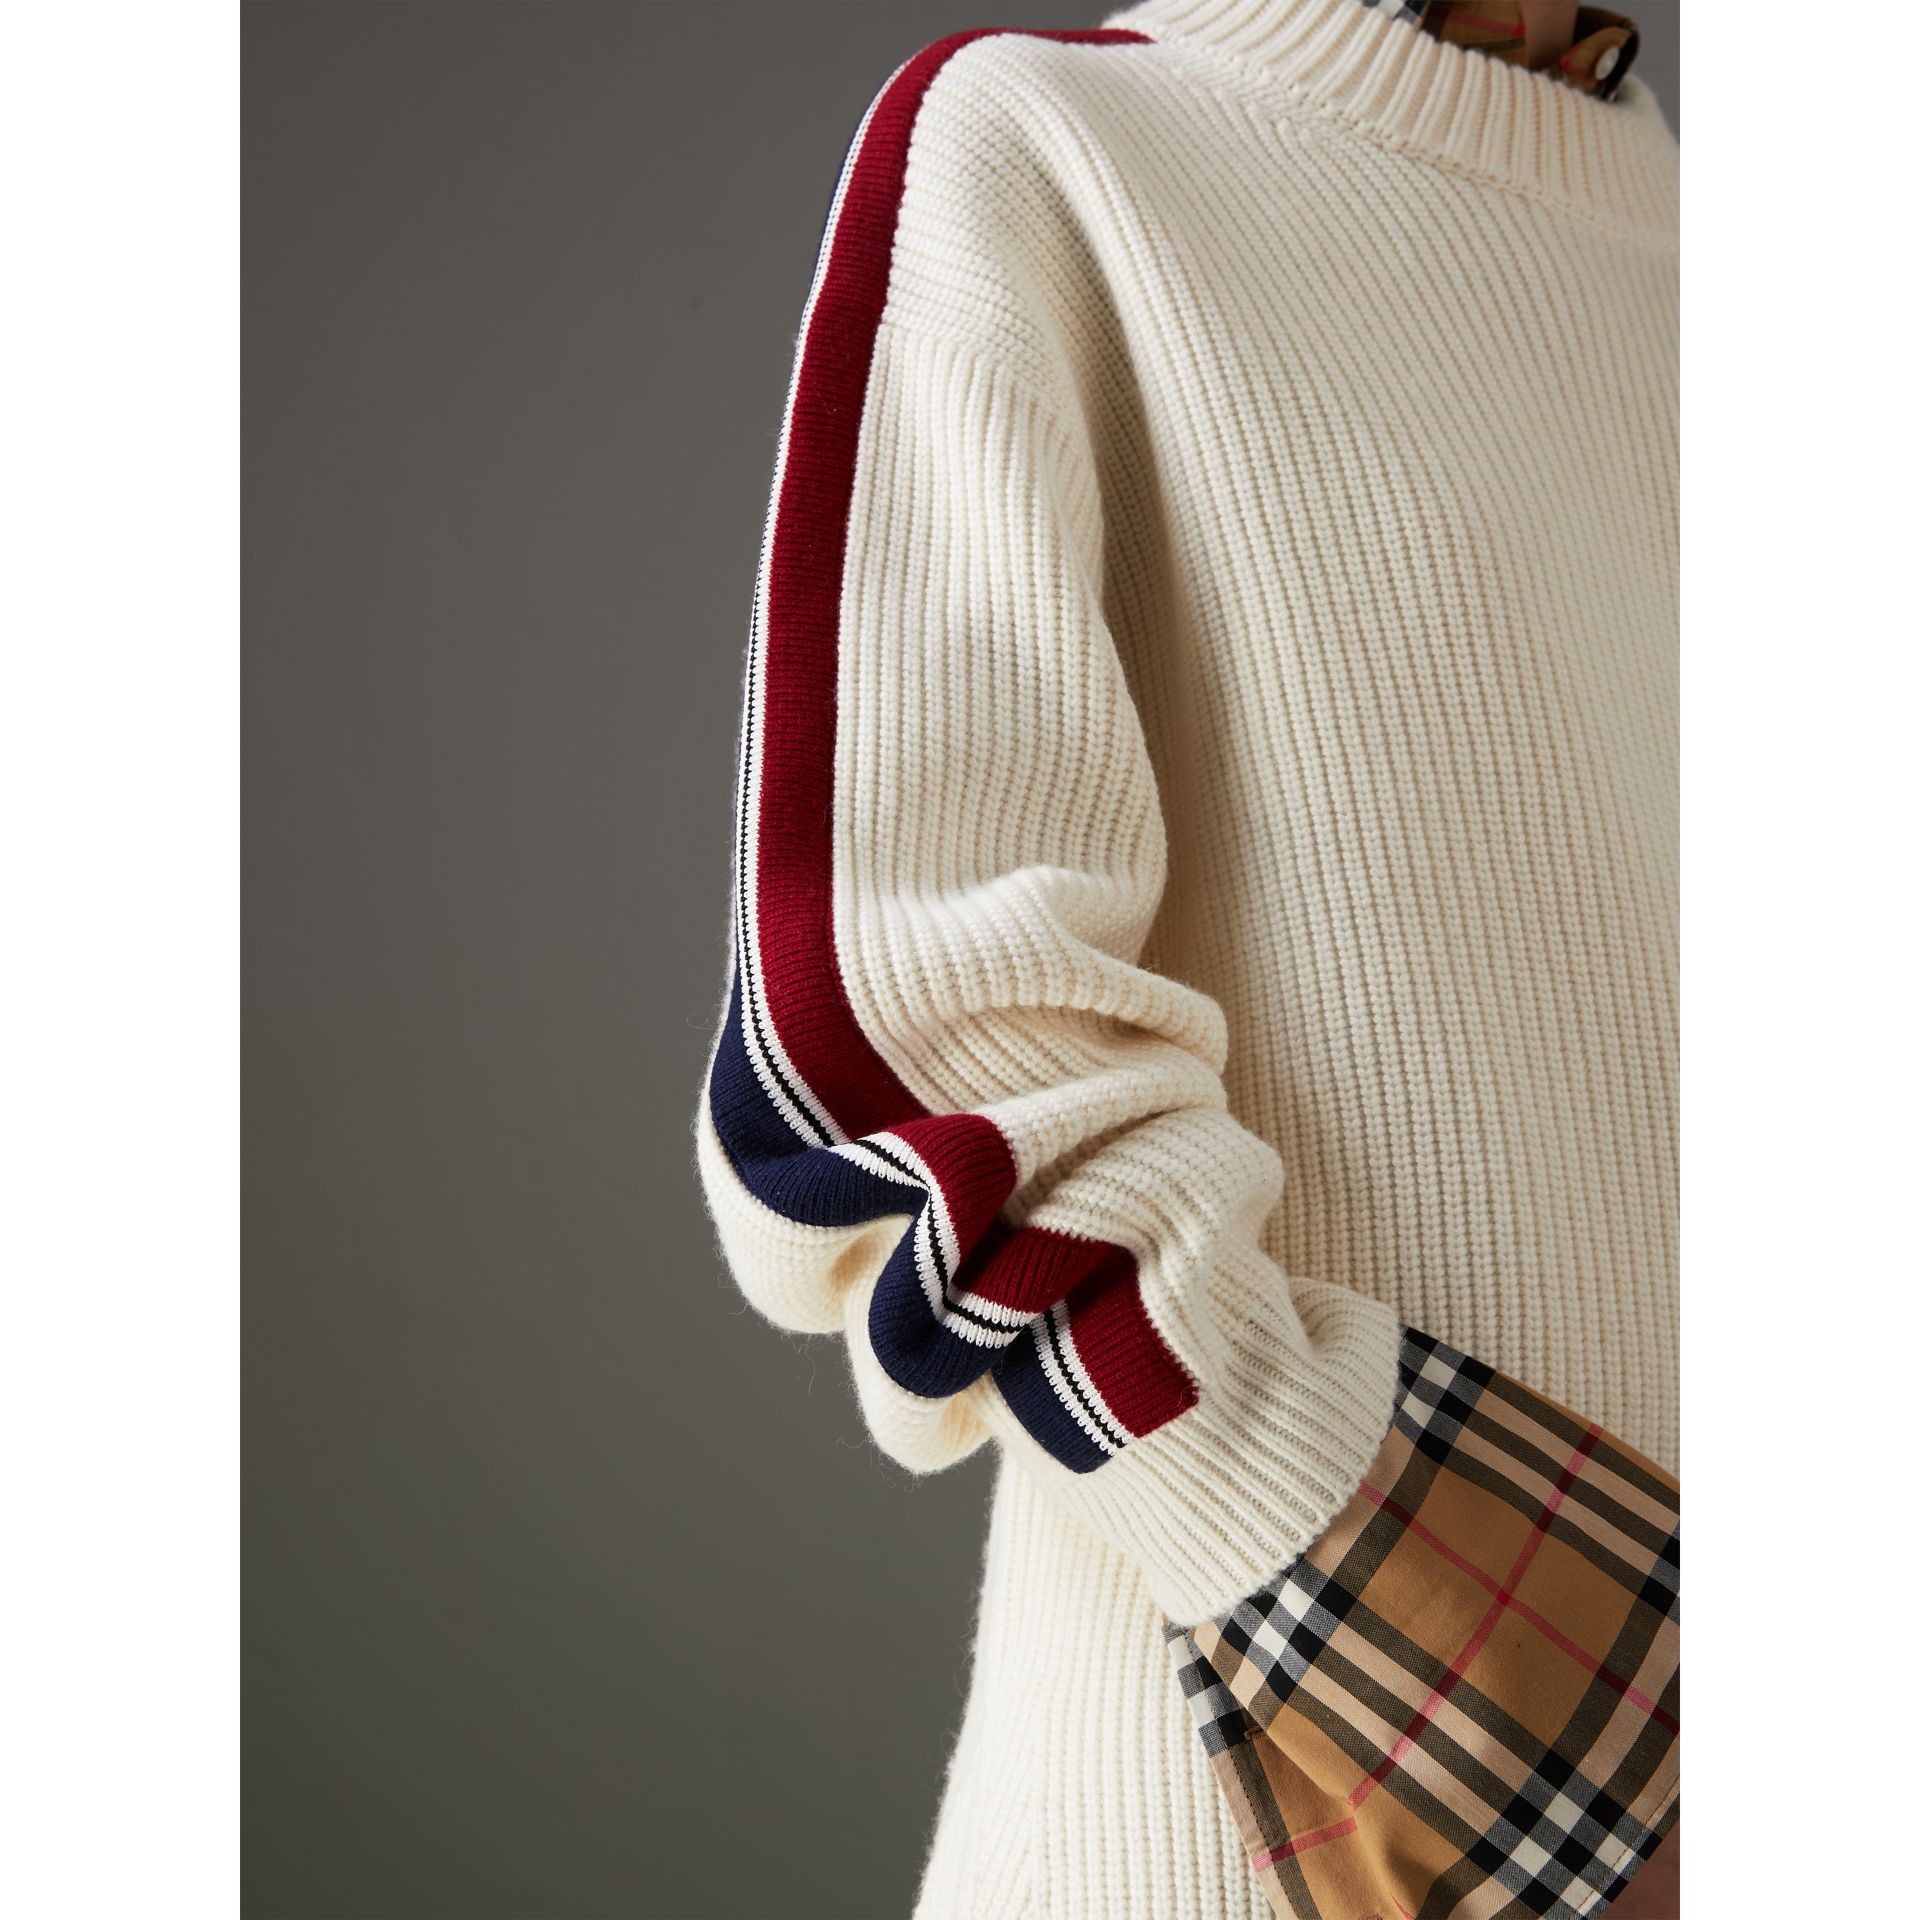 Stripe Detail Wool Cashmere Oversized Sweater in Natural White - Women | Burberry Australia - gallery image 1